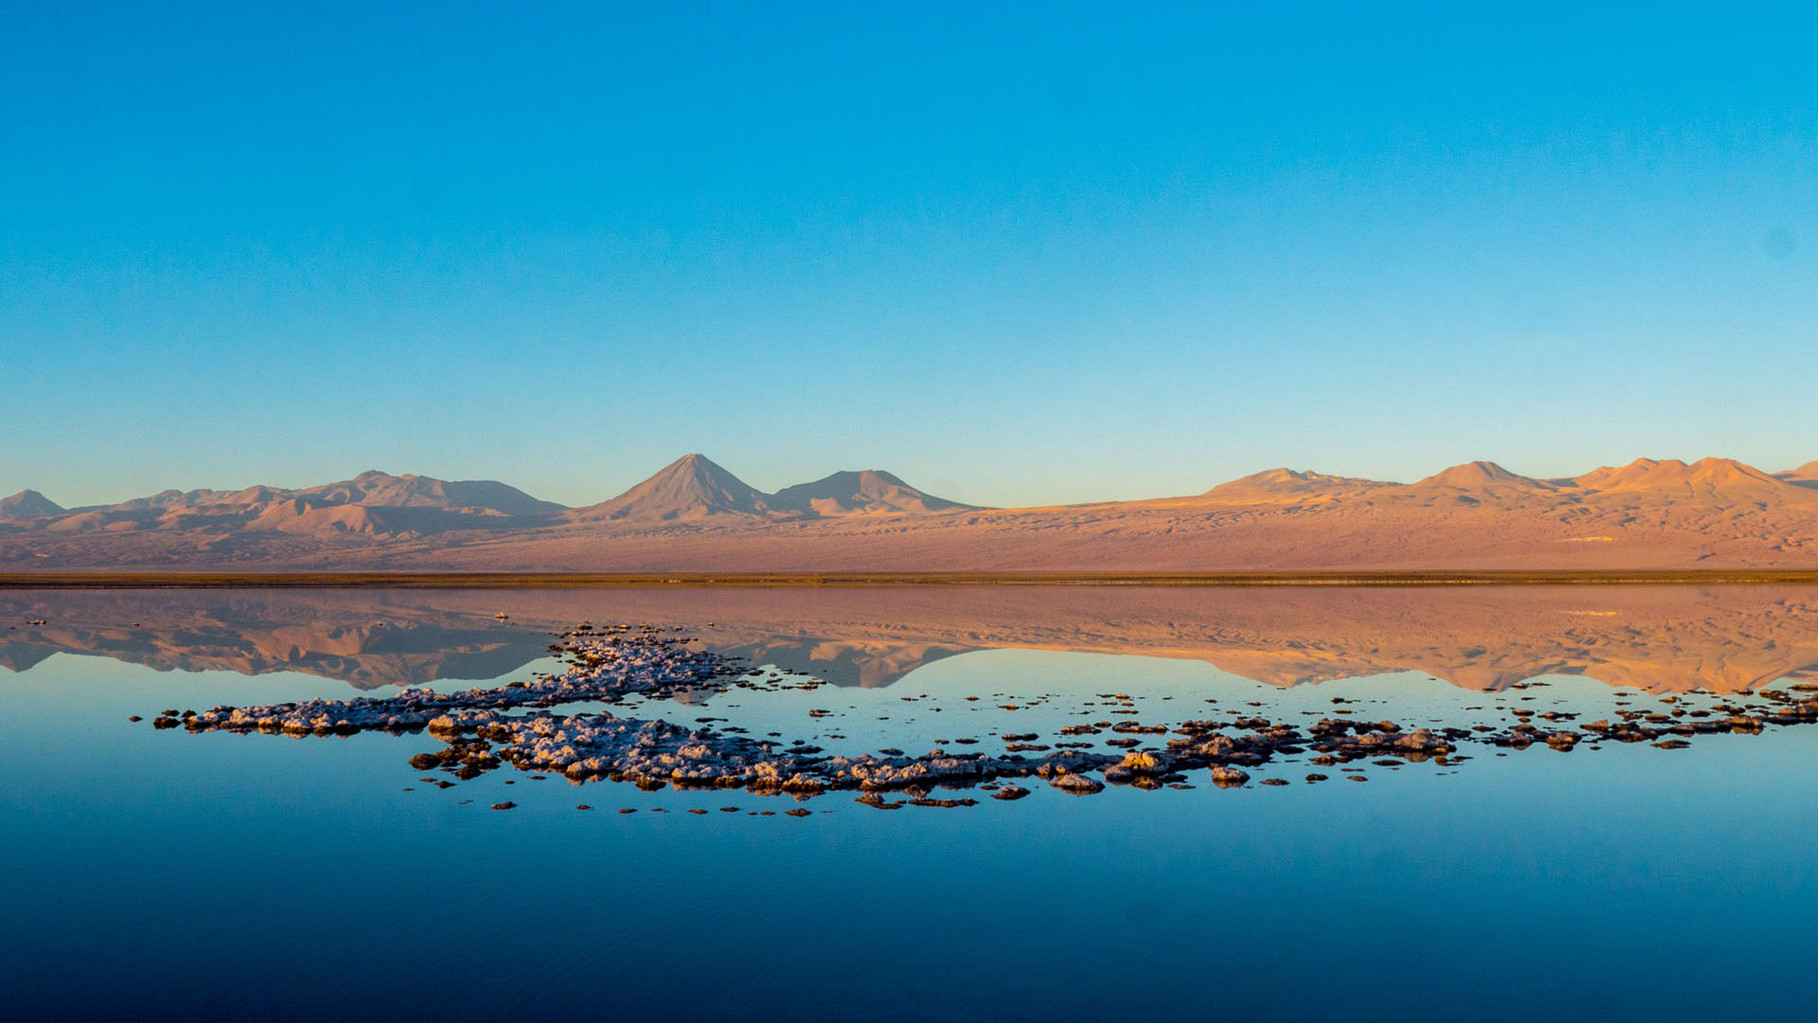 Sunset at Laguna Tebenquiche, reflections of Andes, near San Pedro de Atacama, Chile